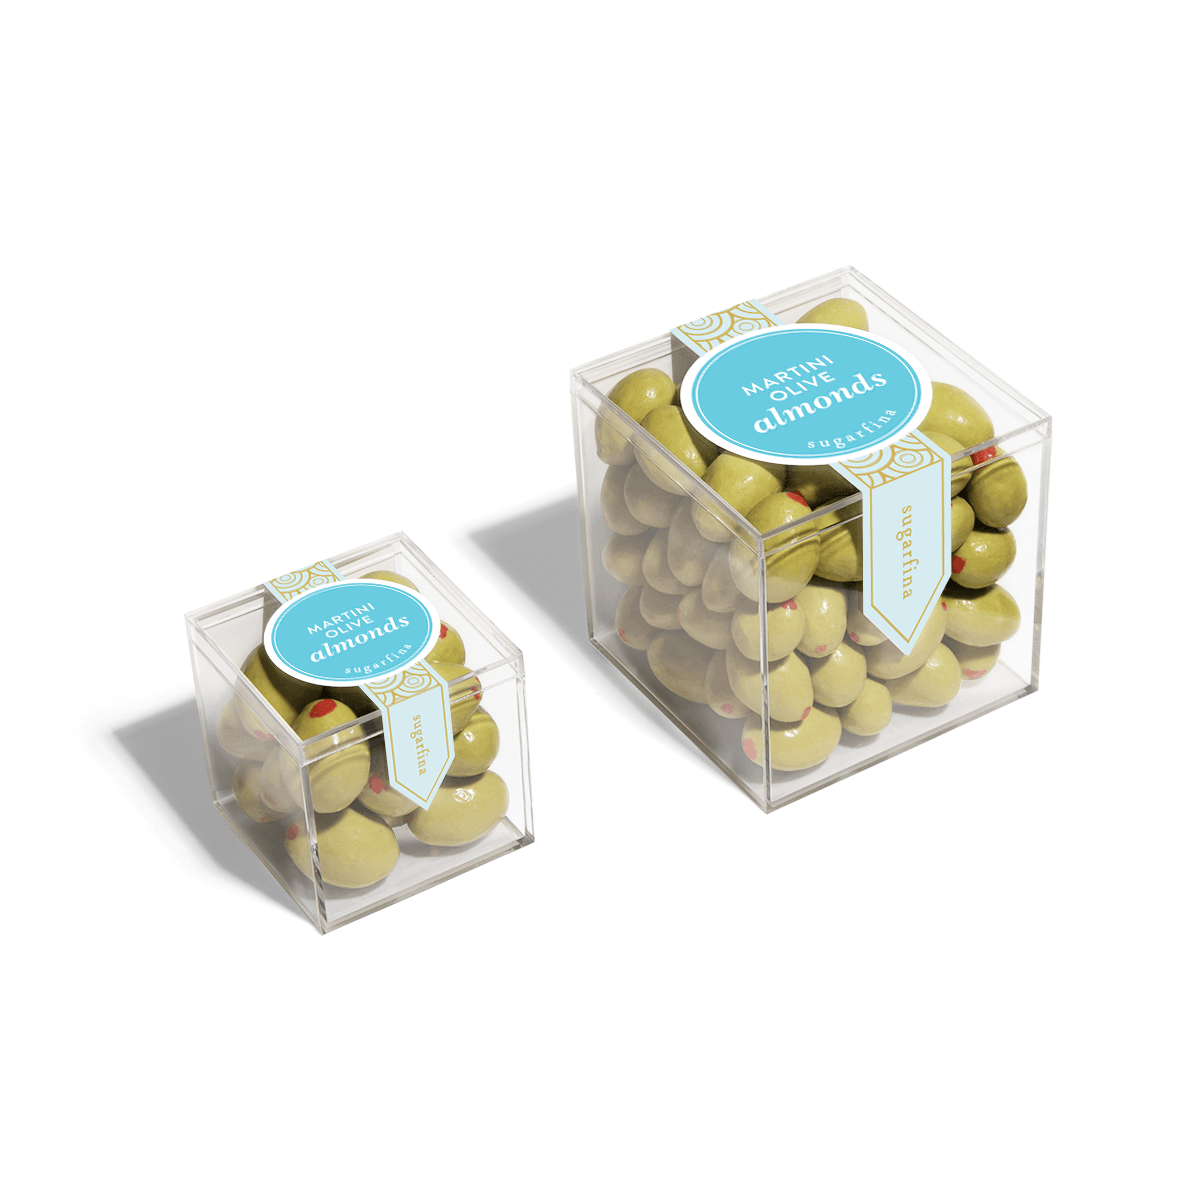 Martini Olive Almonds - Large Candy Cube